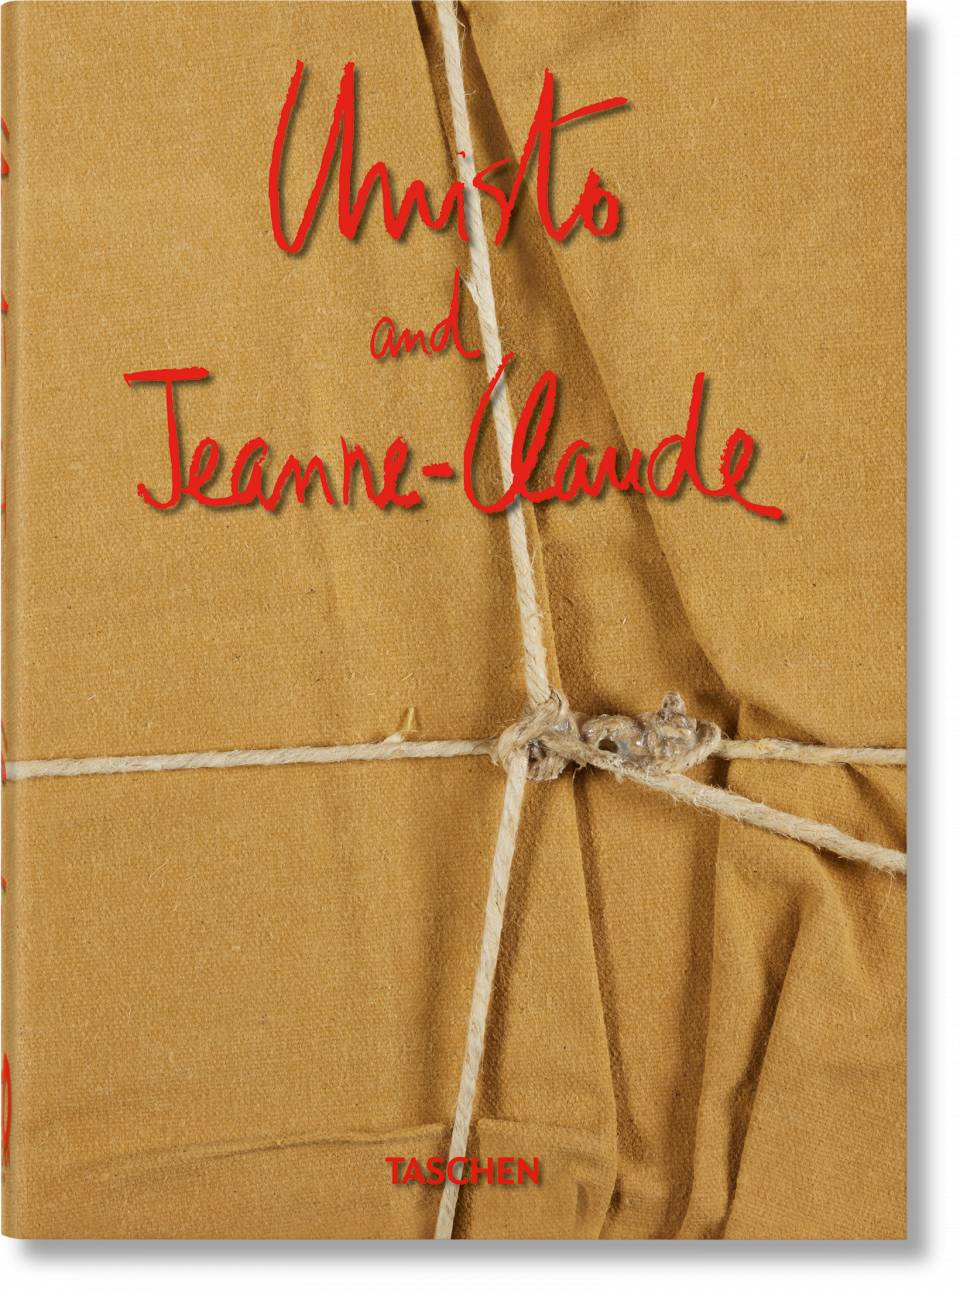 Christo and Jeanne-Claude. 40th Anniversary Edition - image 1